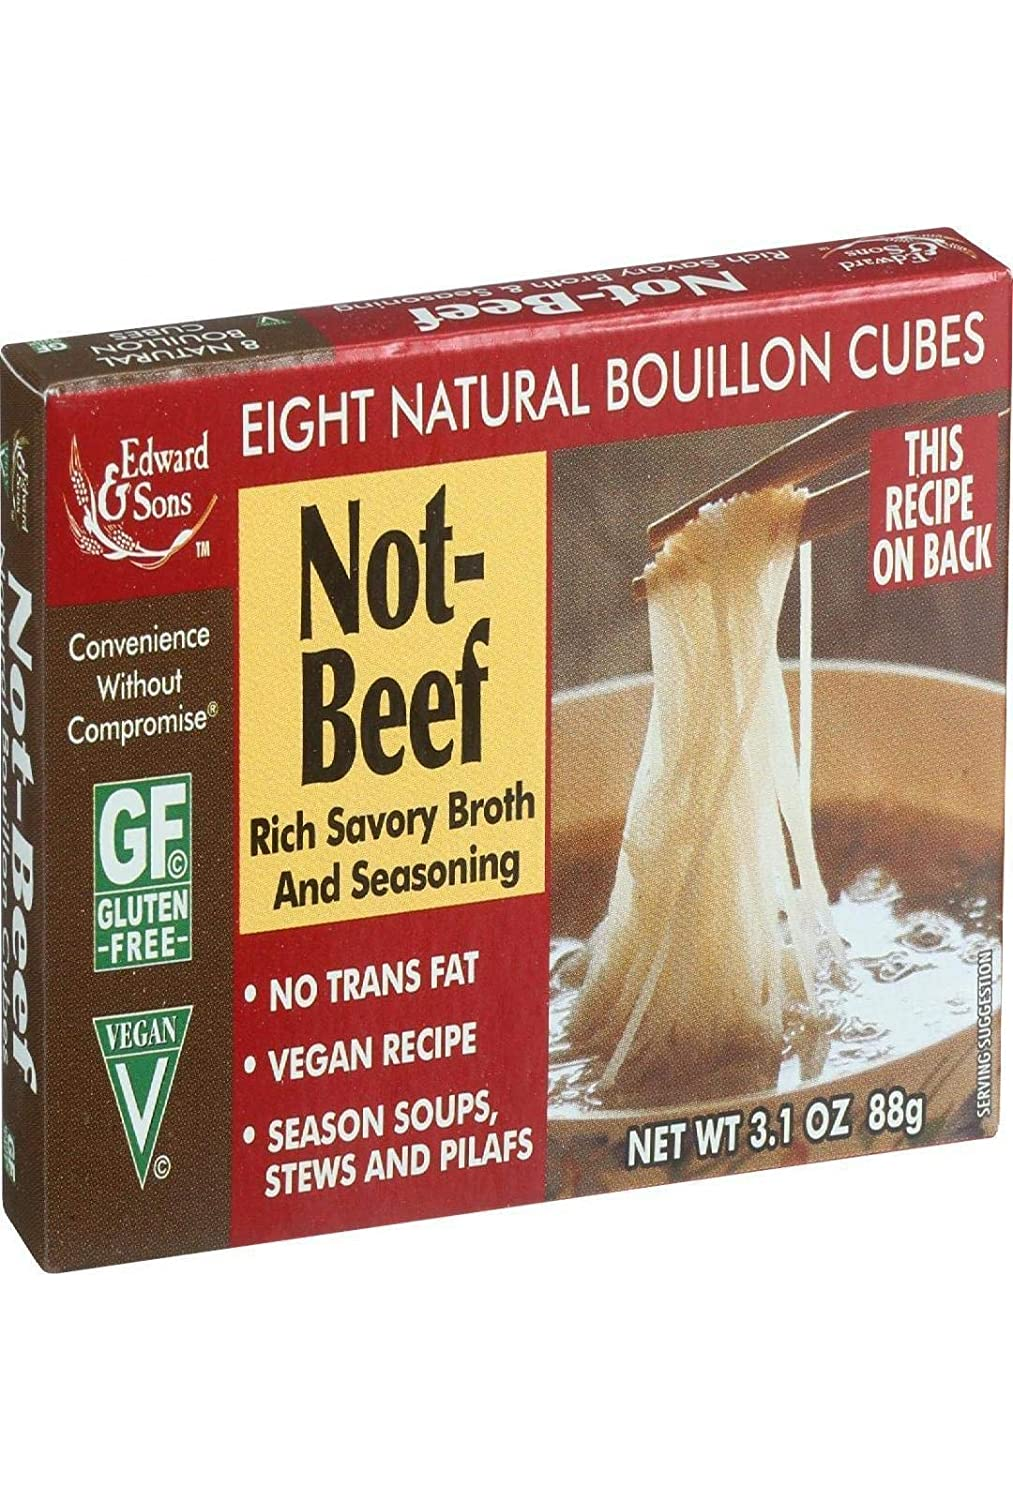 Edward 2021 autumn and winter new Sons Not Beef Bouillon oz 3.1 Max 52% OFF Cubes